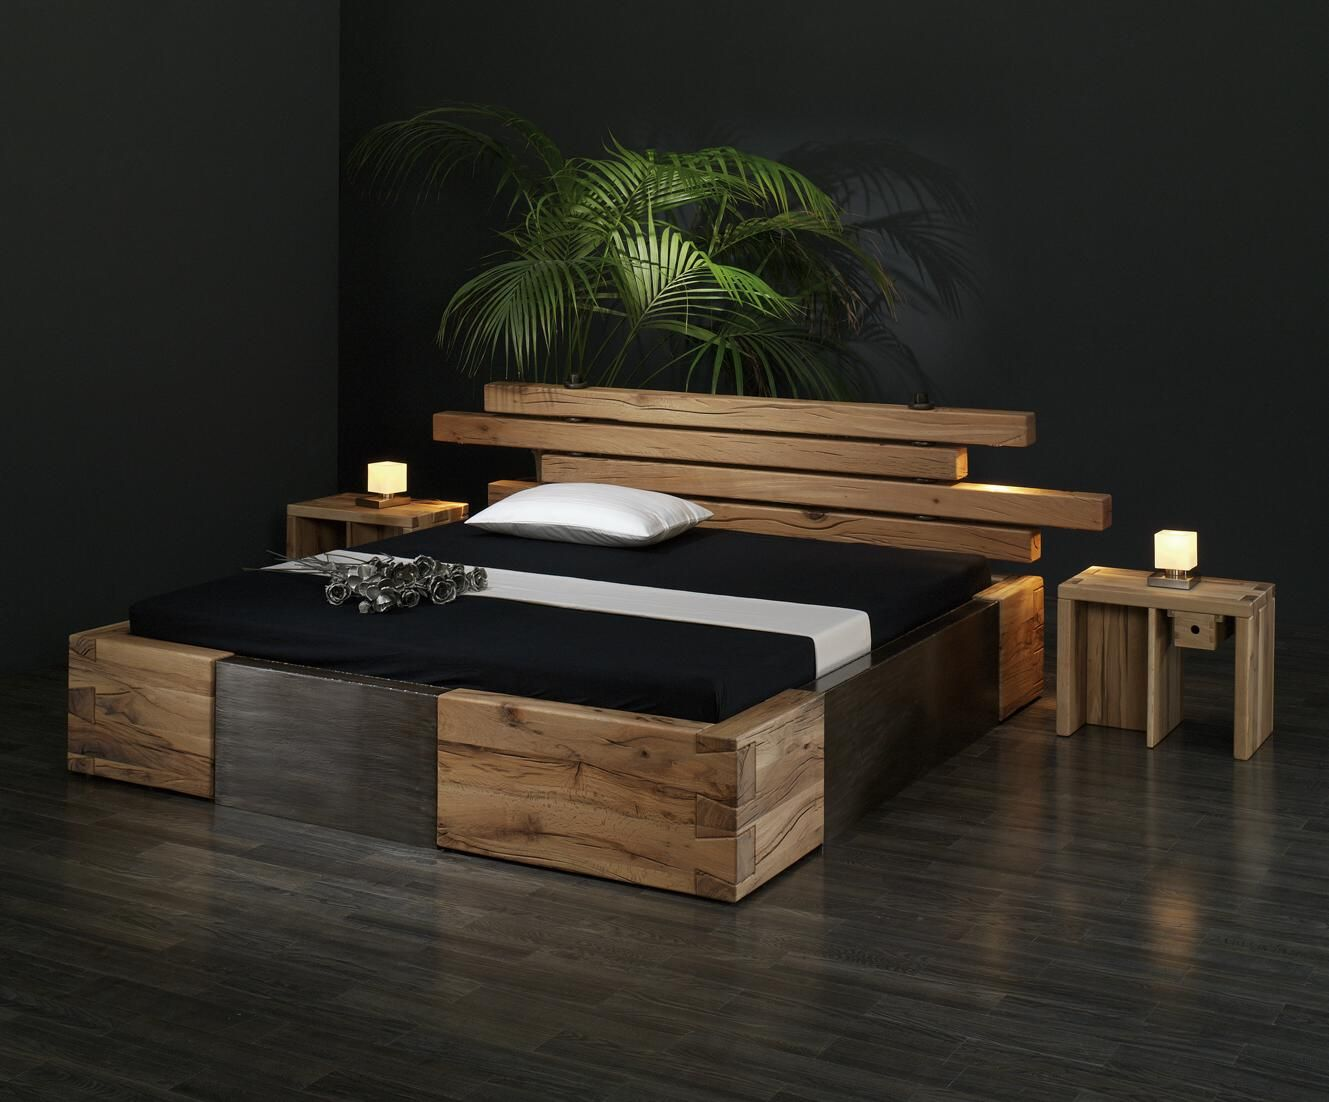 holz bett design google search bedroom pinterest. Black Bedroom Furniture Sets. Home Design Ideas